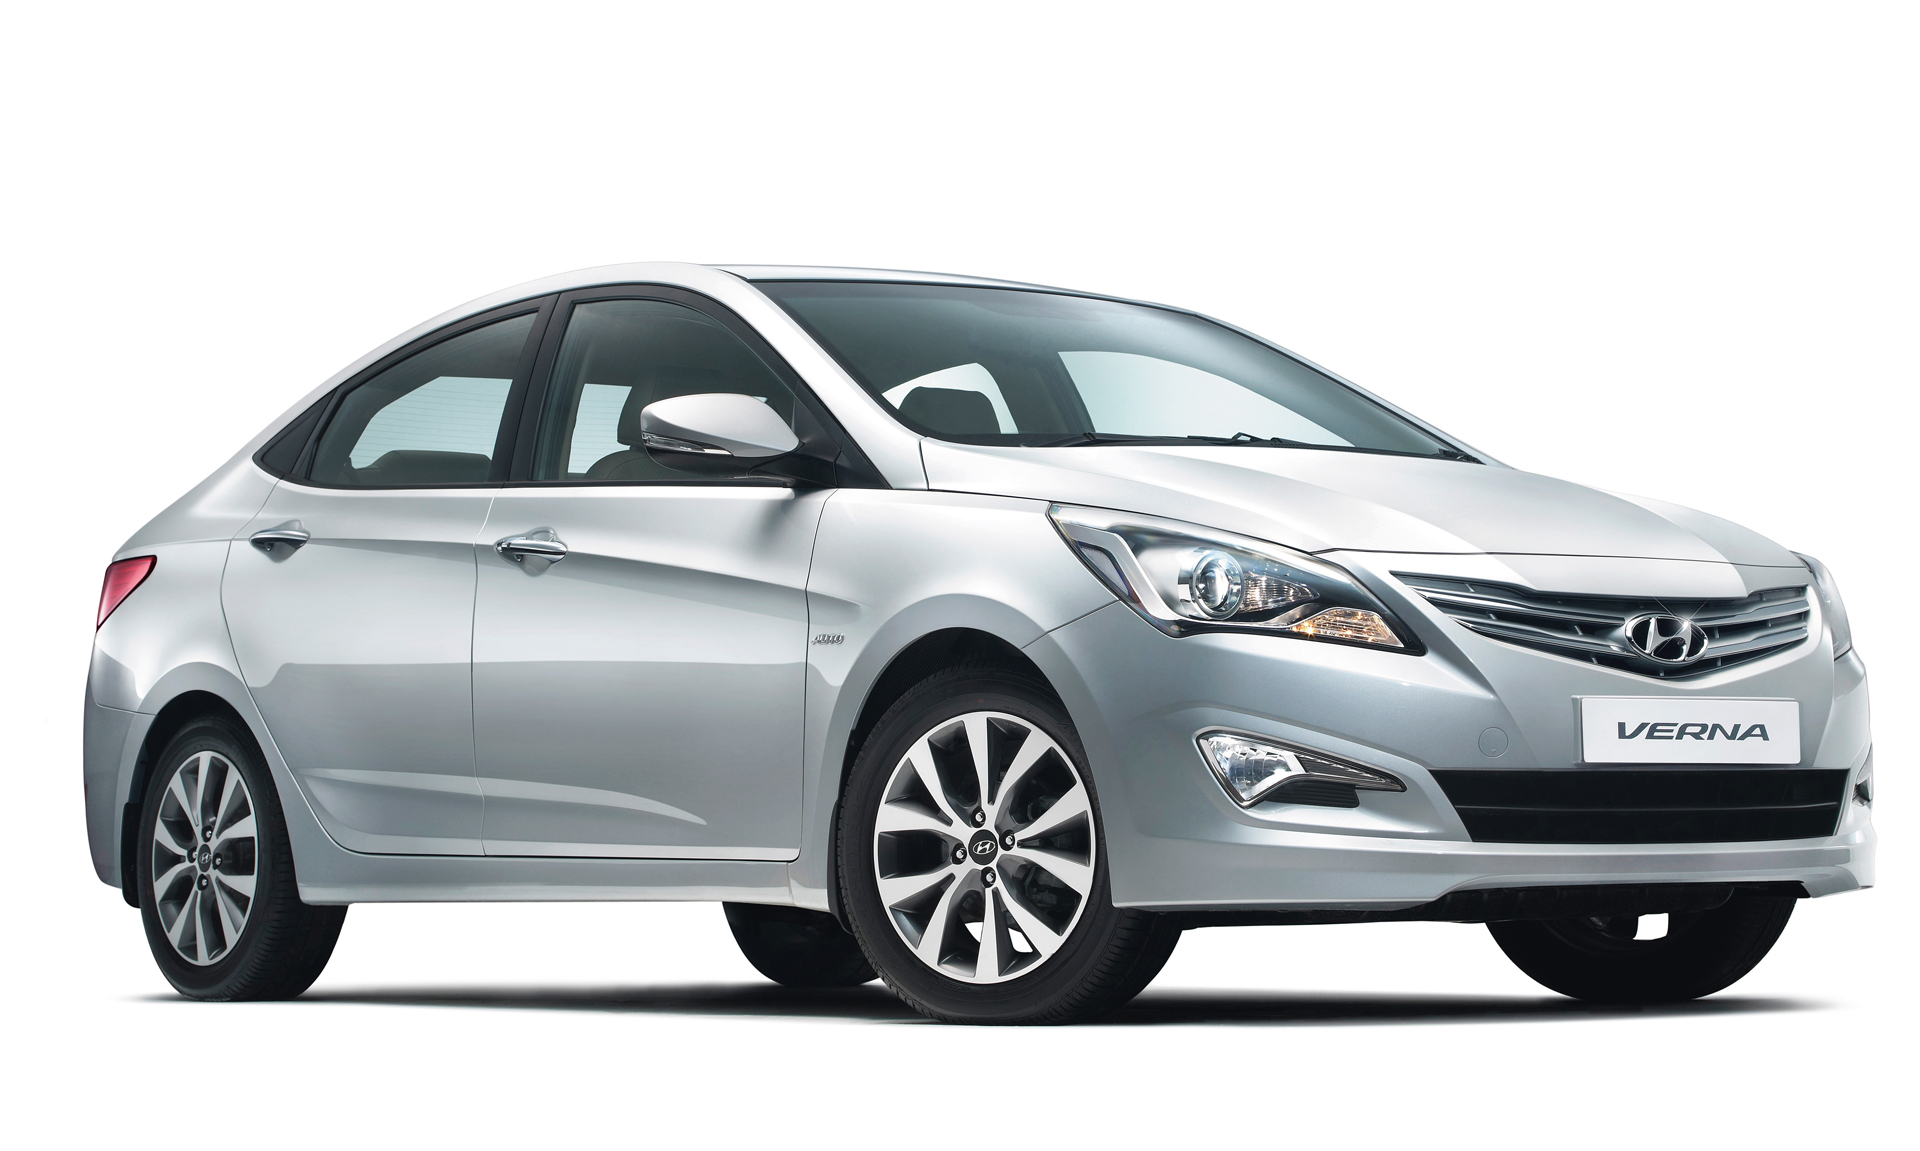 Prices For The 4S Verna Fluidic Range Between Rs 774 1015 Lakhs Petrol And 894 1219 Diesel Variants